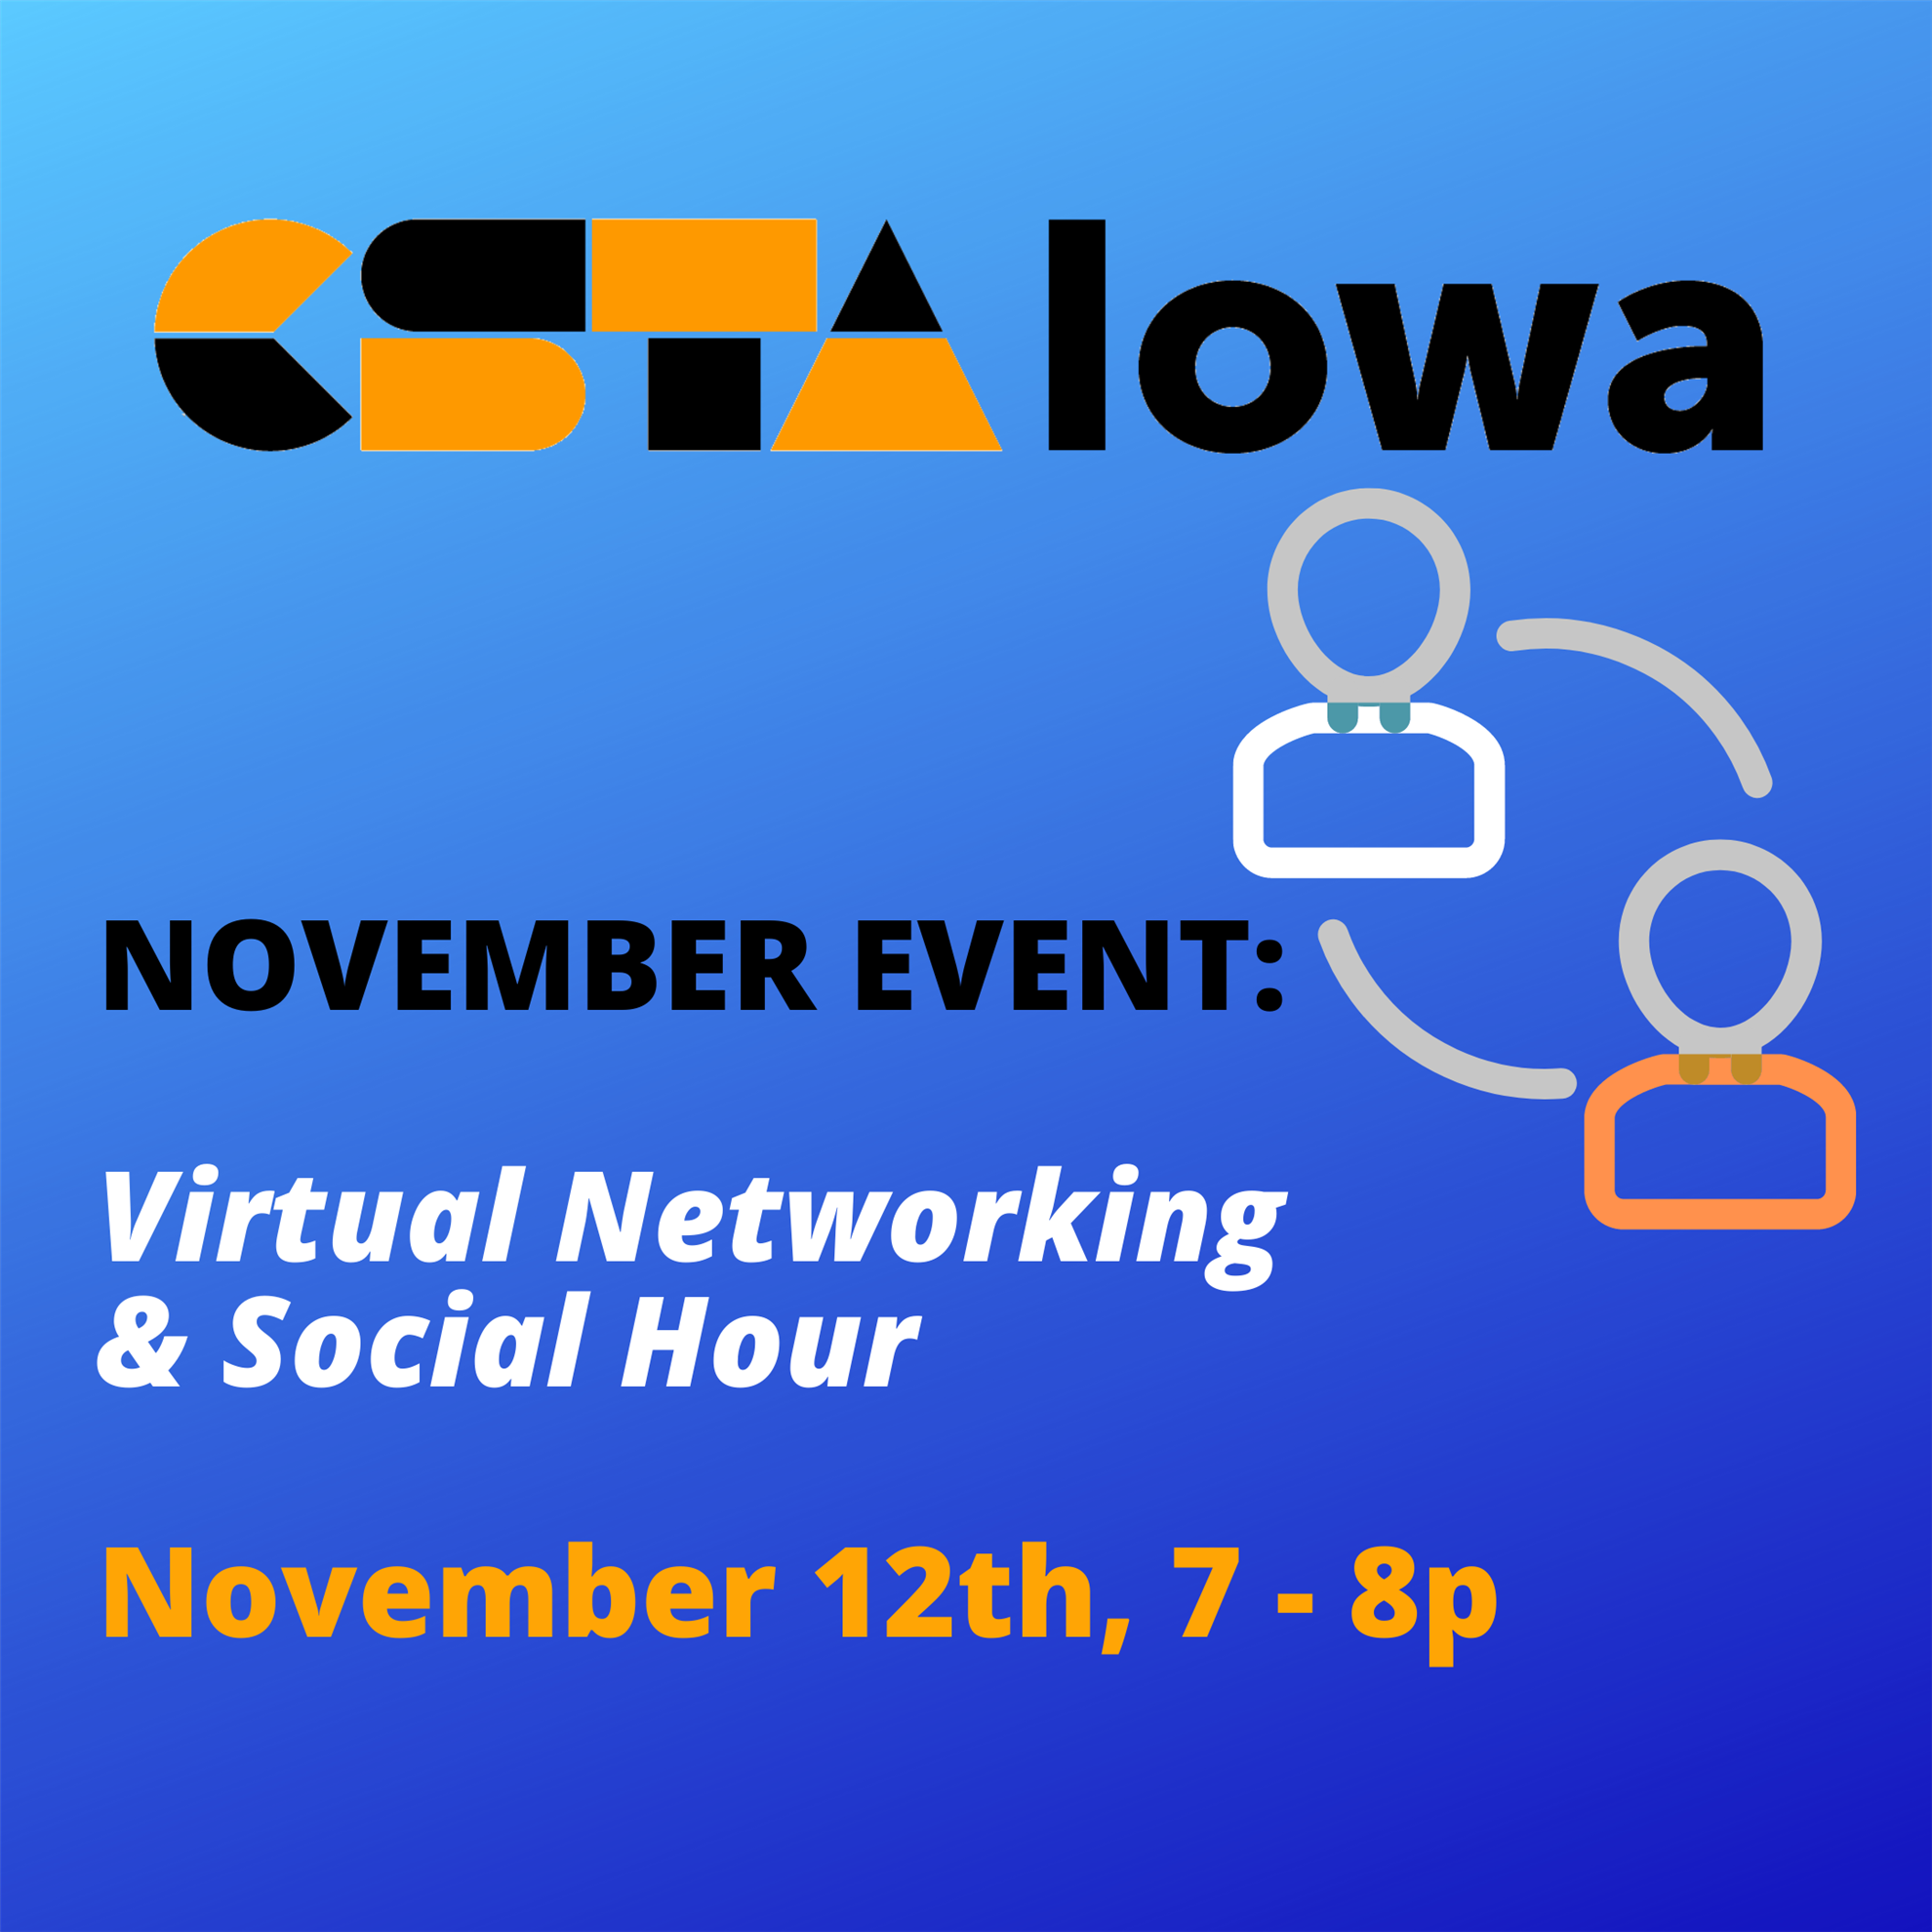 CSTA Iowa November 2020 Virtual Networking & Social Hour (CSTA Iowa)